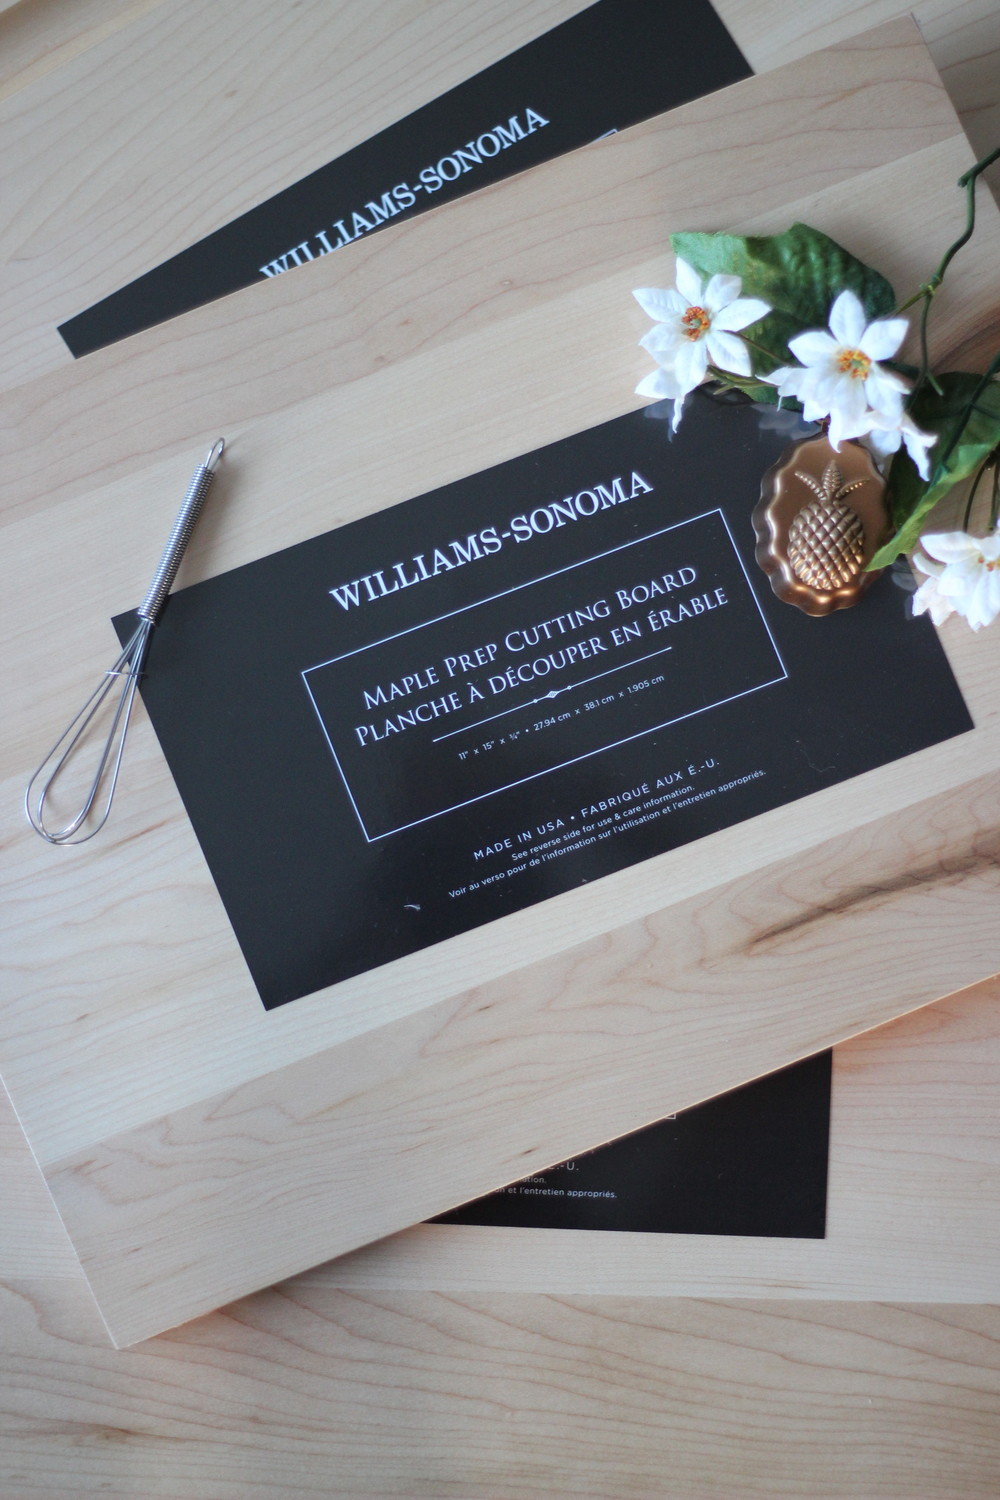 Wedding gift idea - cutting boards from William-Sanoma